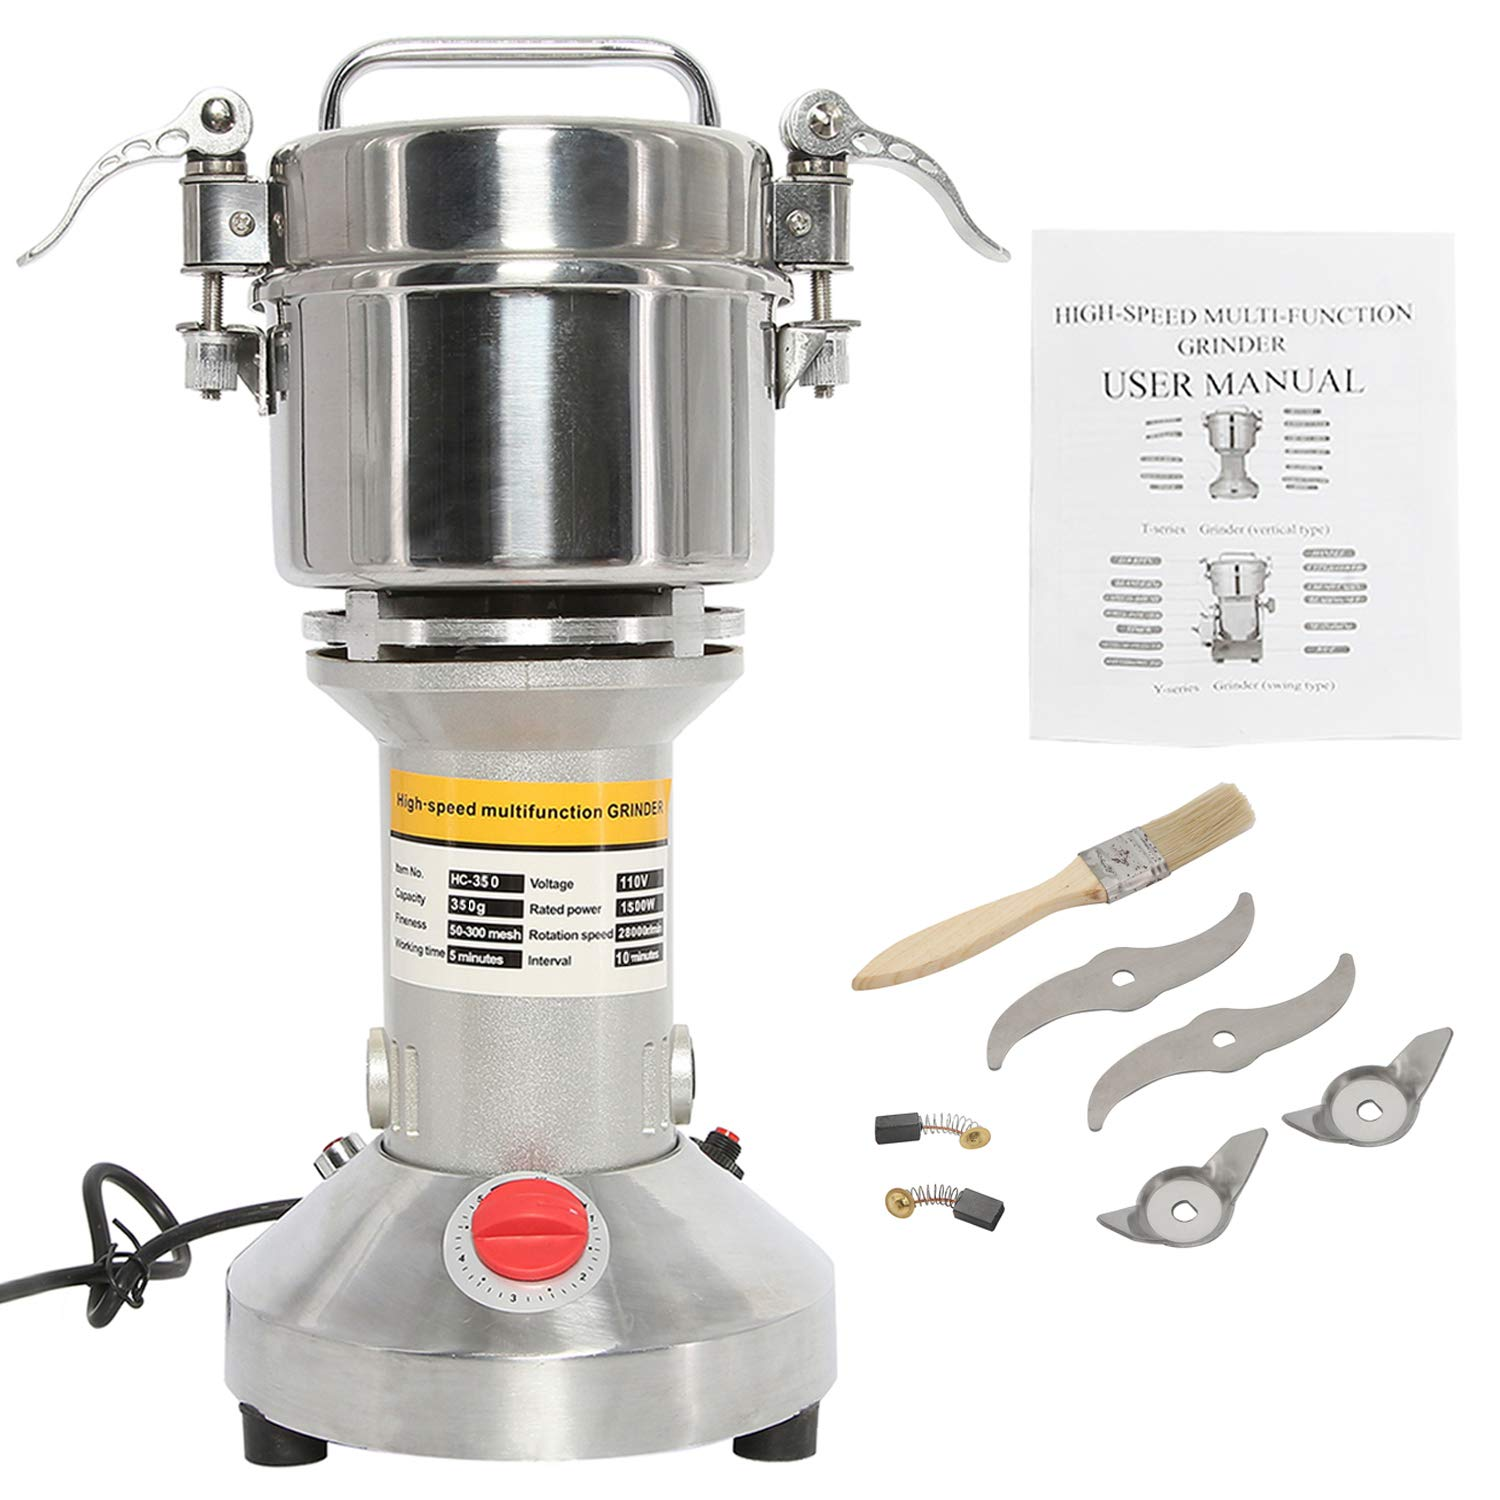 HYDDNice 350g Grain Mill Grinder High Speed 1500W 70-300 Mesh 28000RPM Electric Stainless Steel Grinder Spice Herb Cereals Corn Flour Powder Machine Commercial Grade by HYDDNice